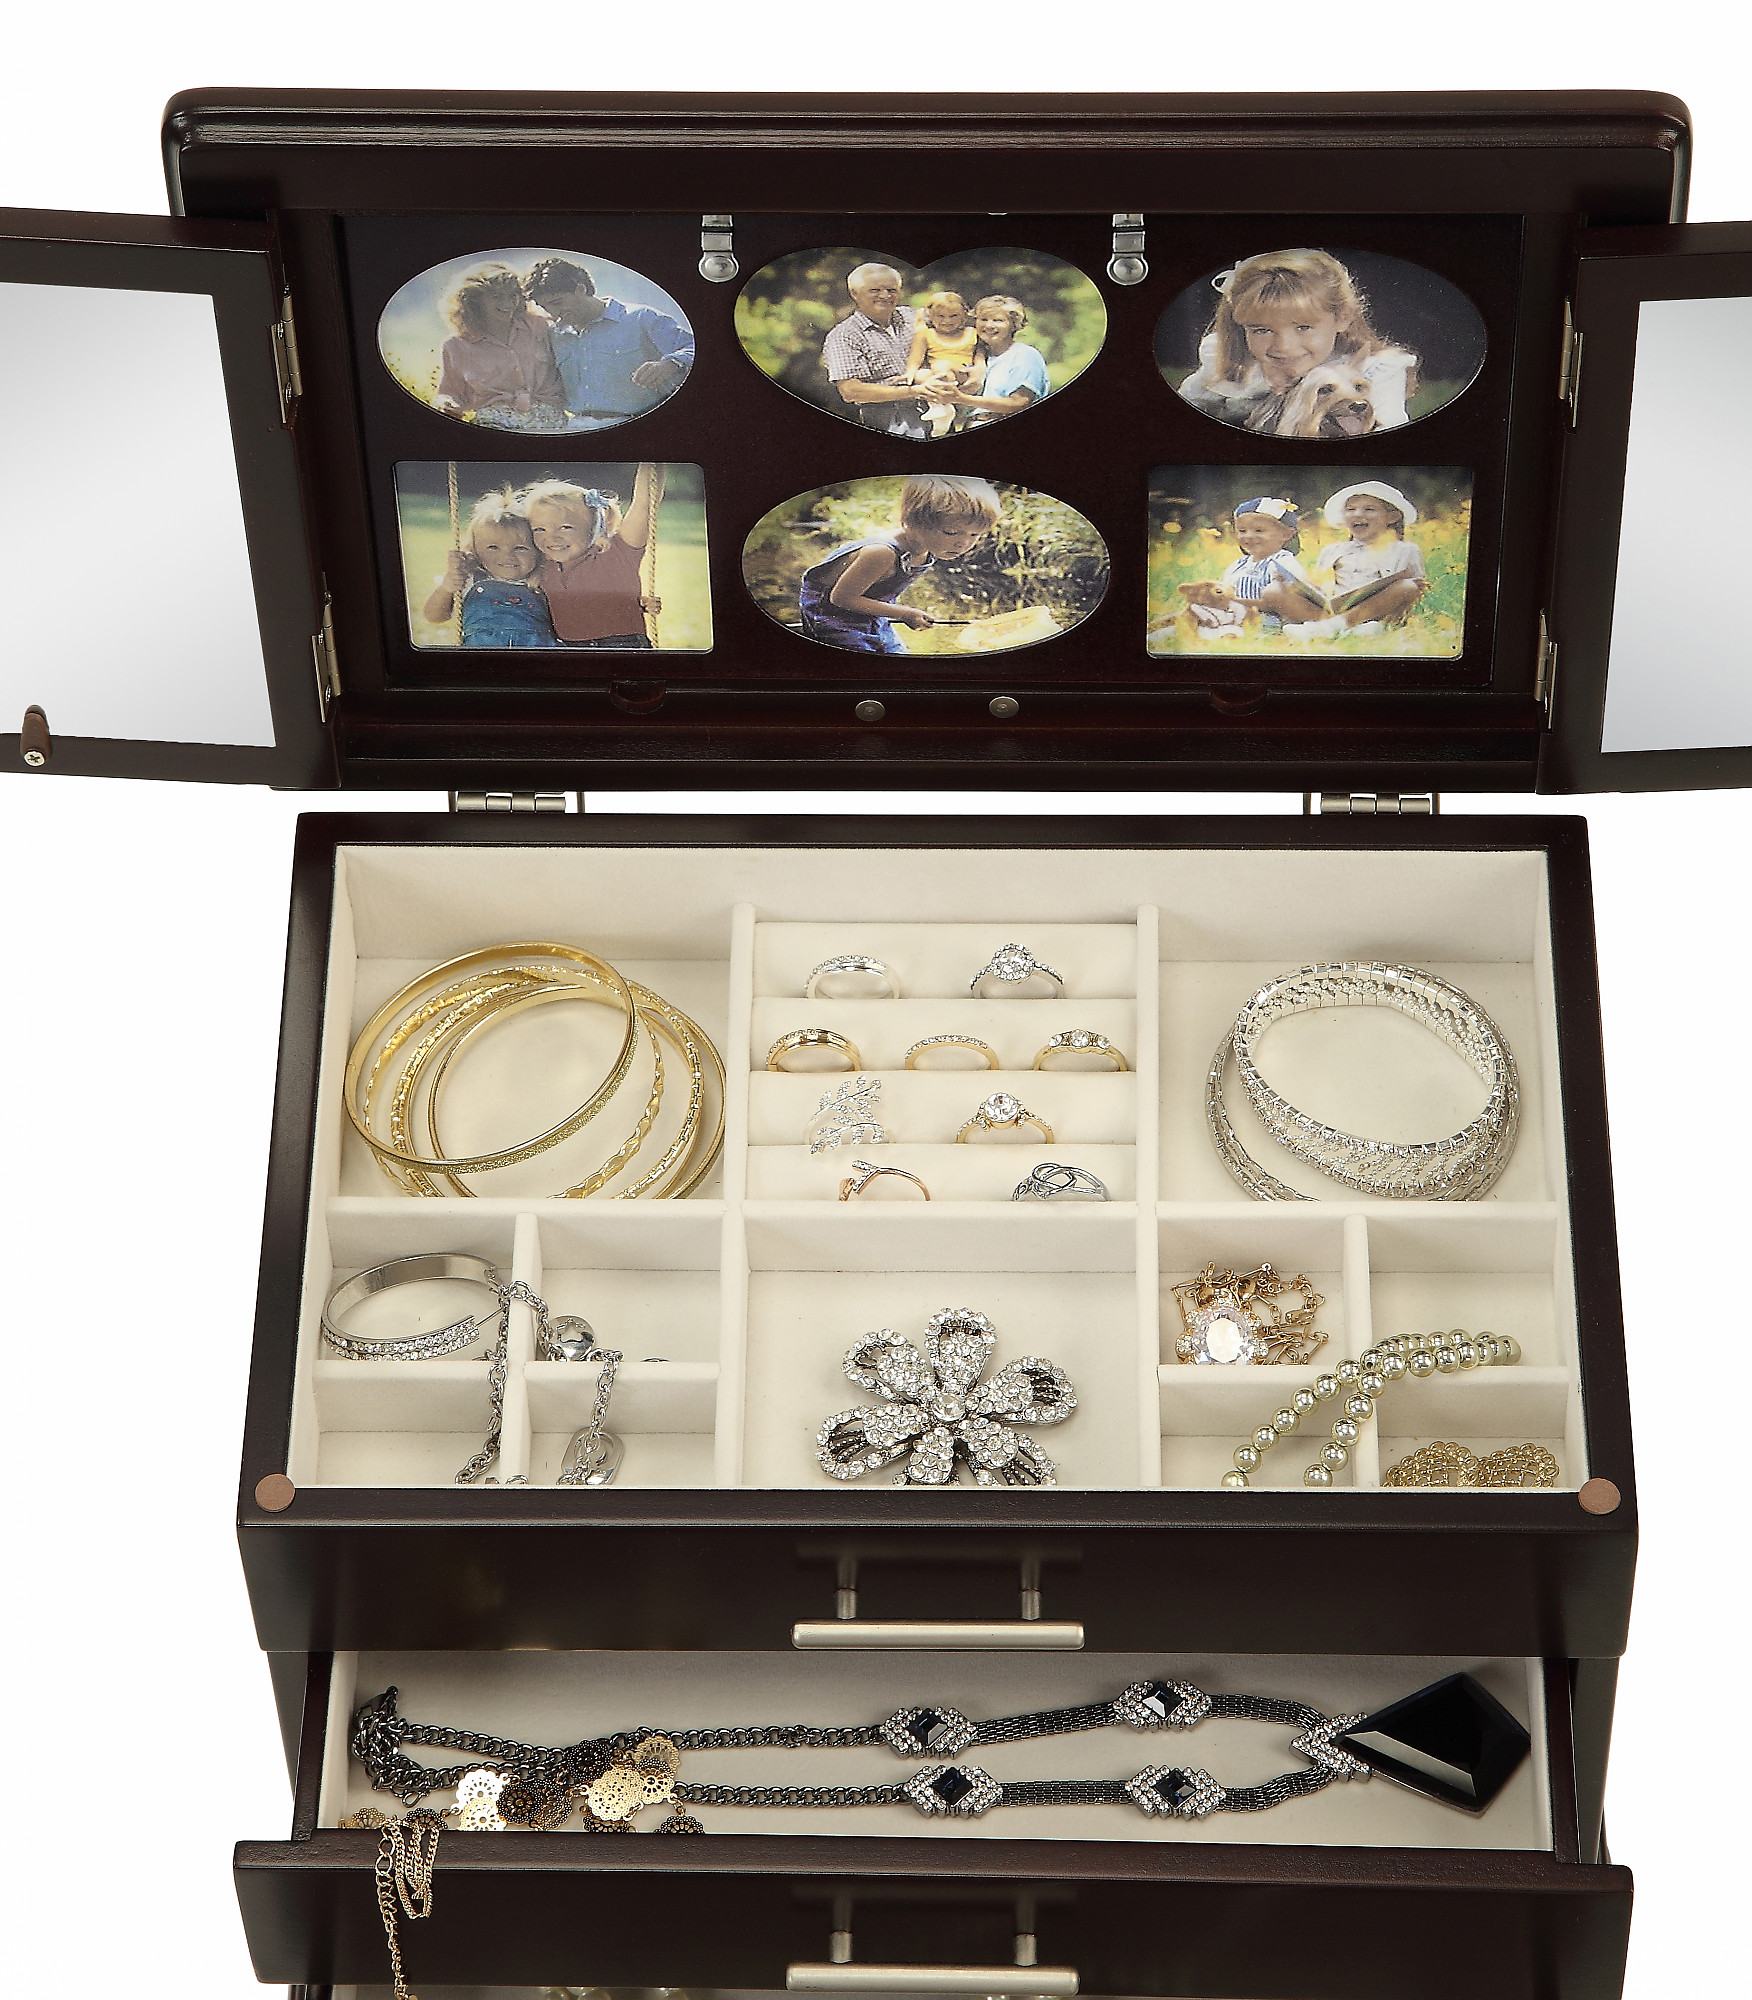 Memories Picture Photo Frame Jewelry Box With 2 Mirrors And Collage